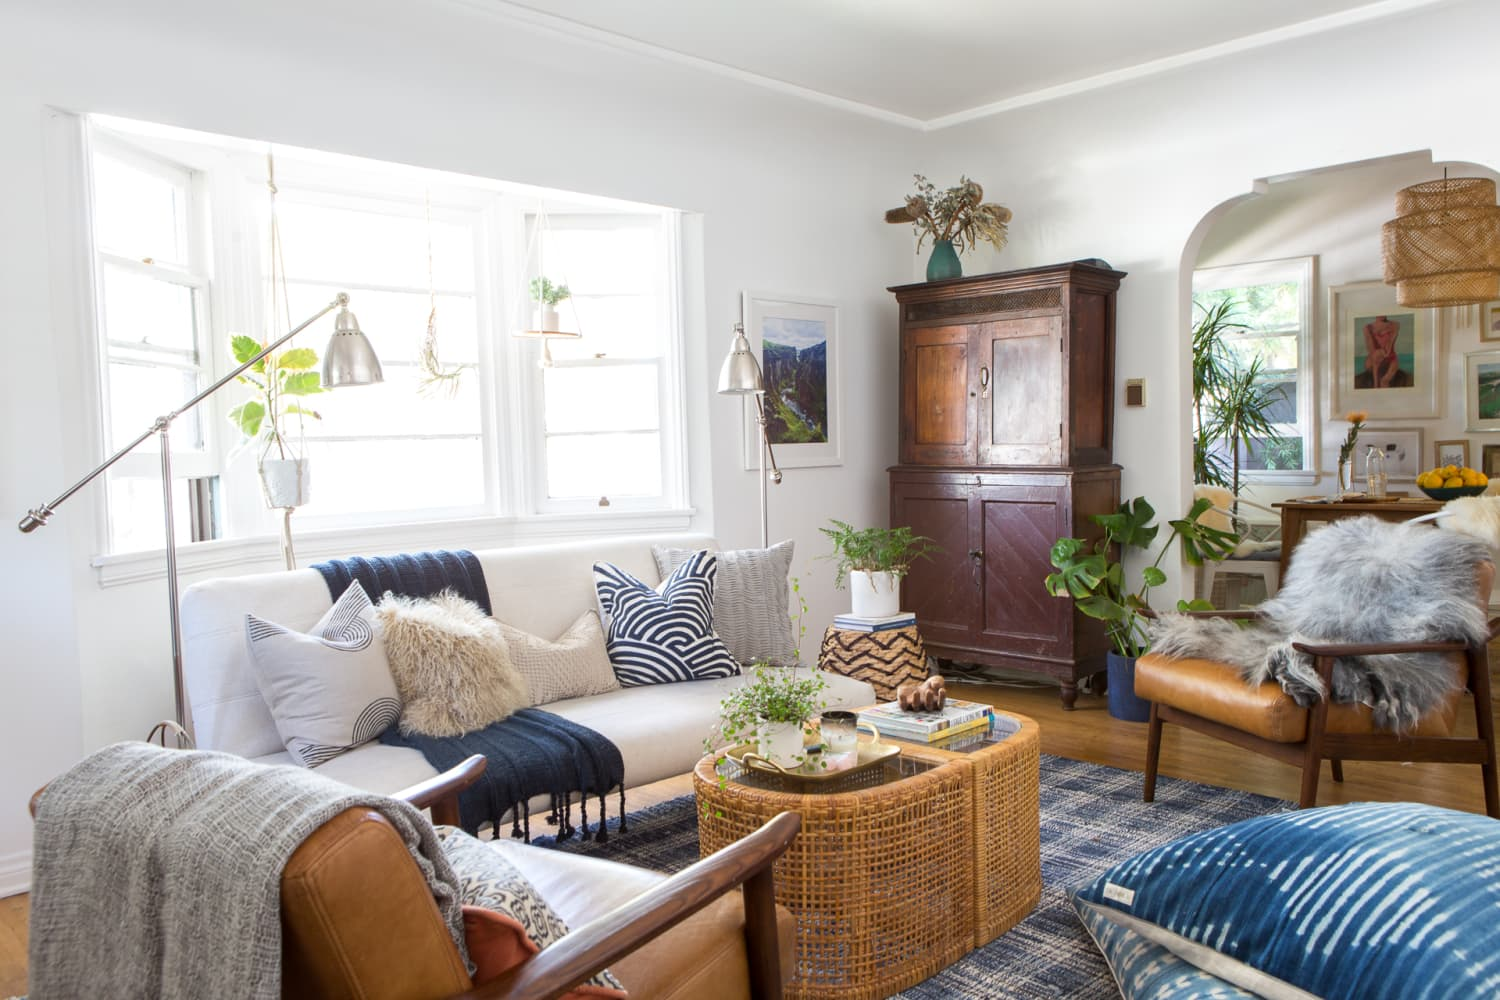 8 Free or Cheap Ways to Make Your Home More Cozy for Winter